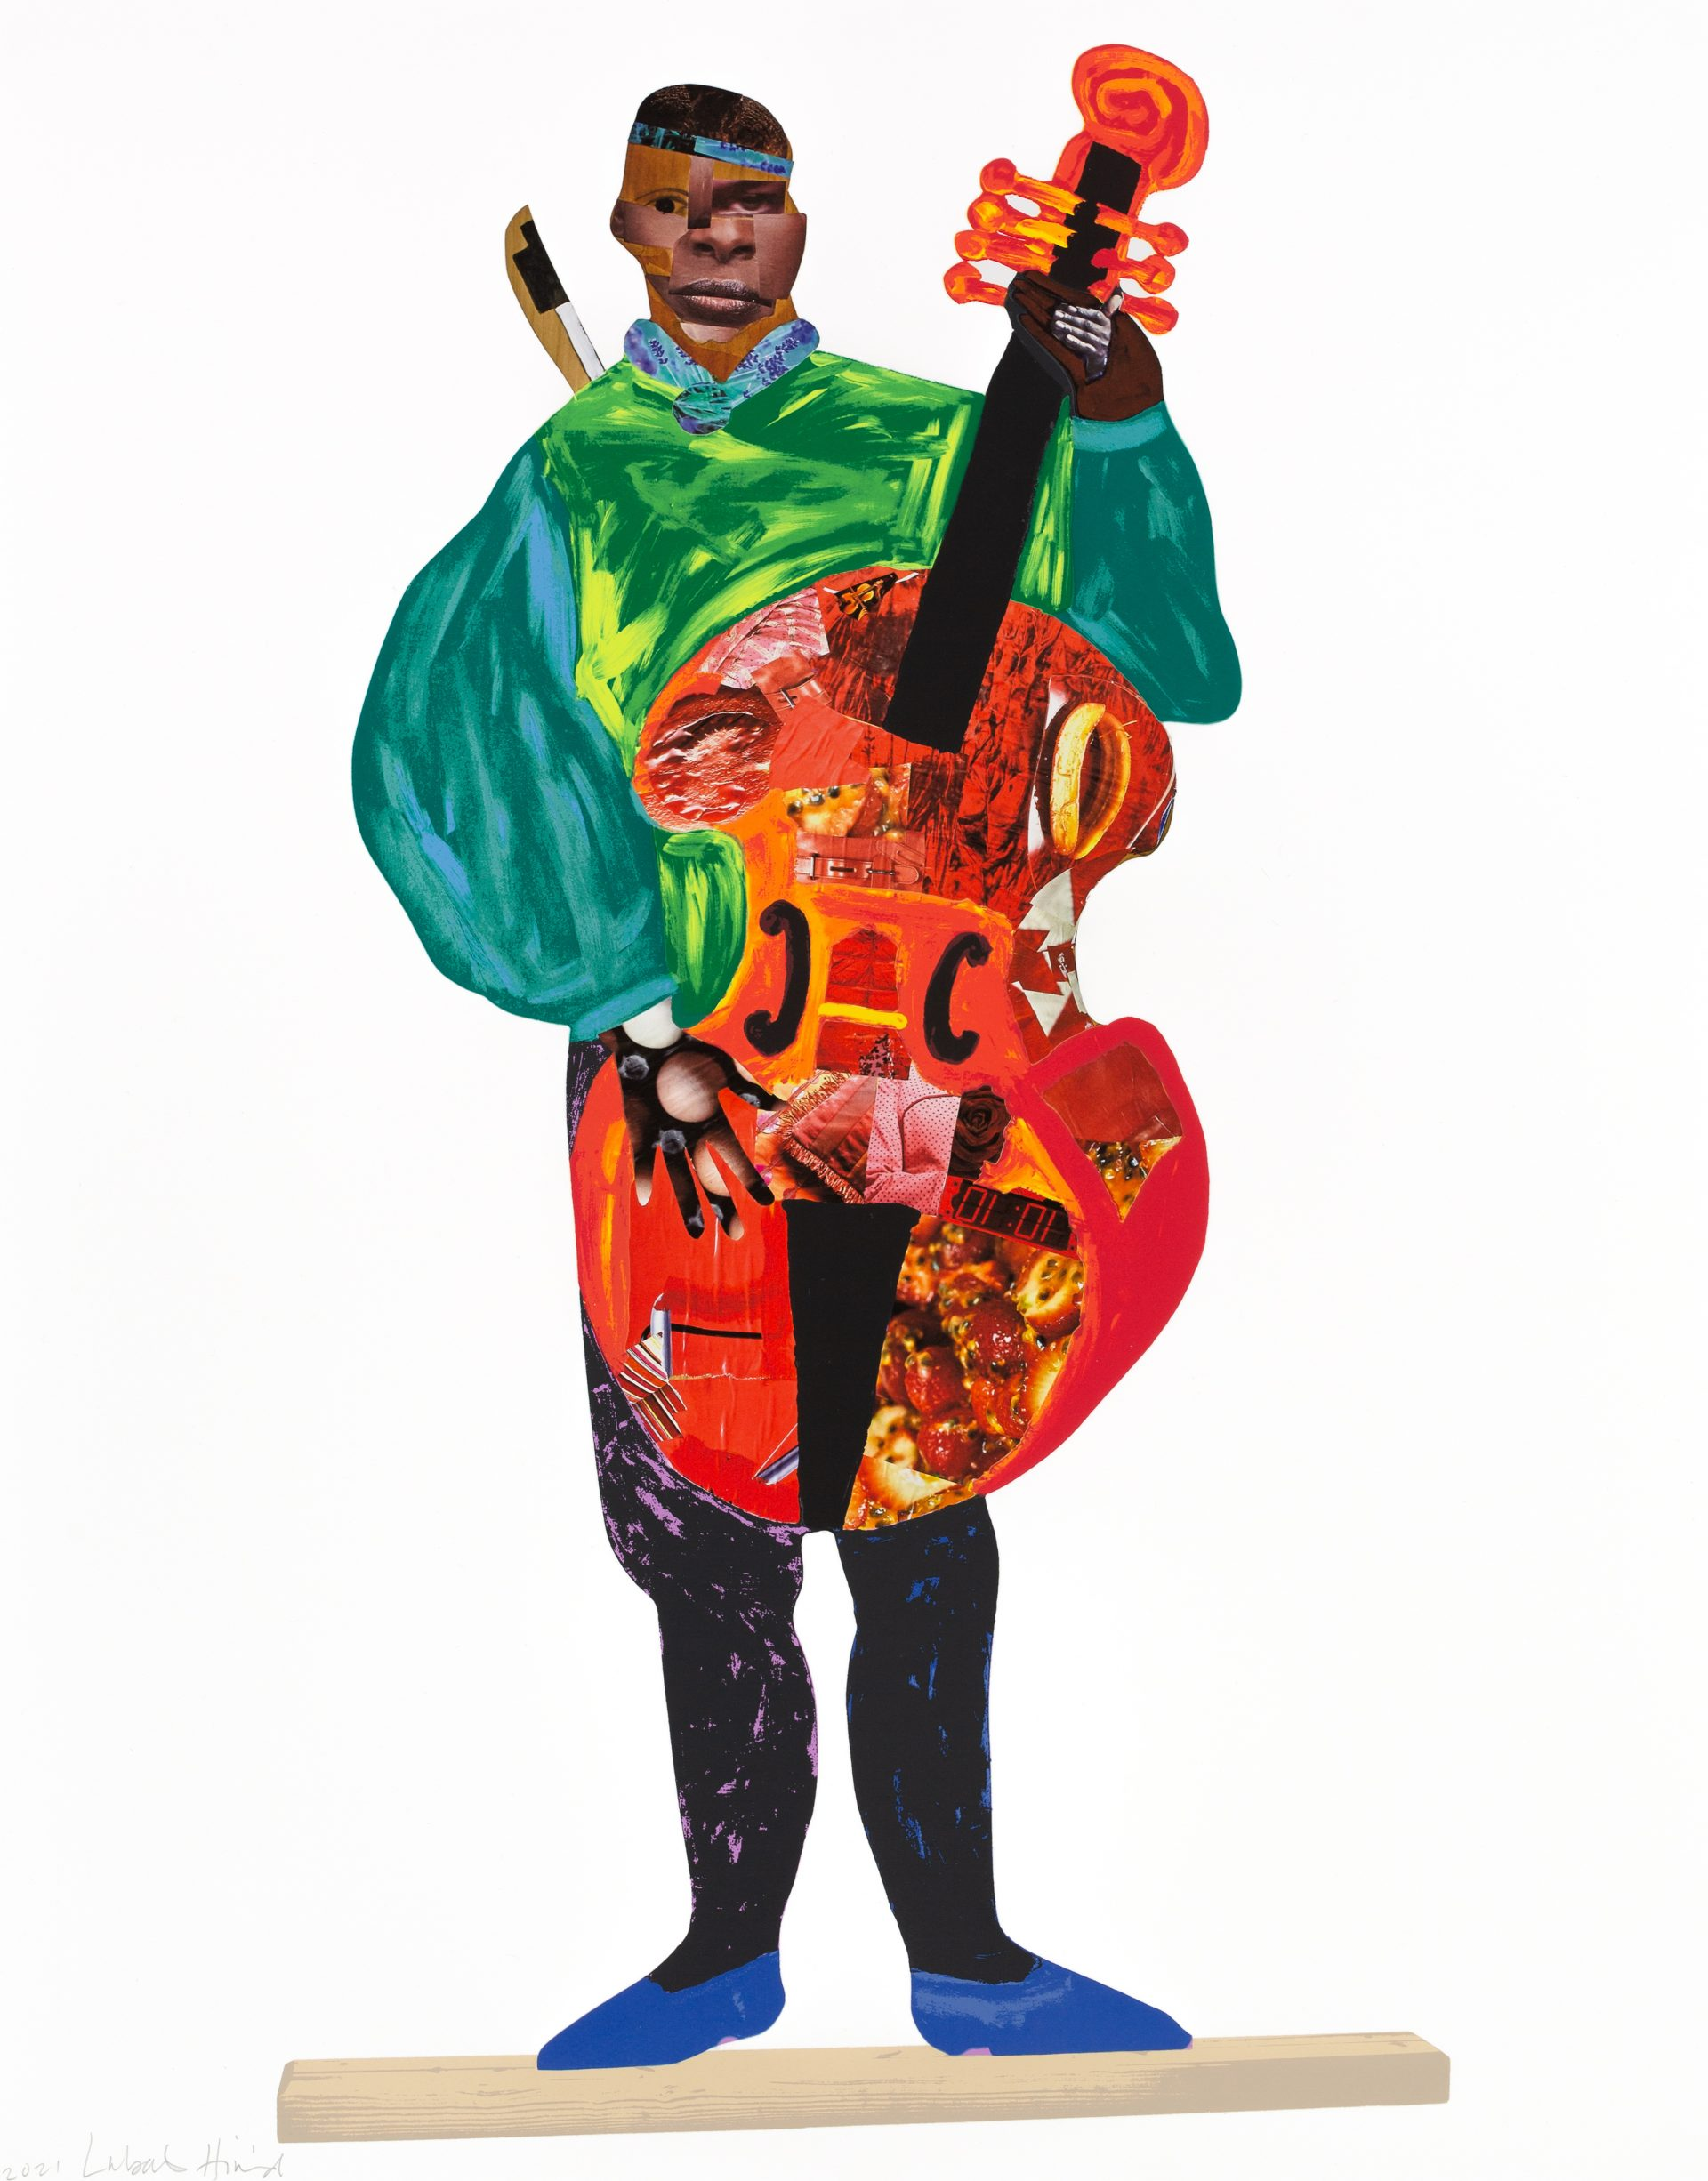 22.06.21 – Lubaina Himid print edition featured in Counter Editions portfolio for 'Tate Modern 21 Years'